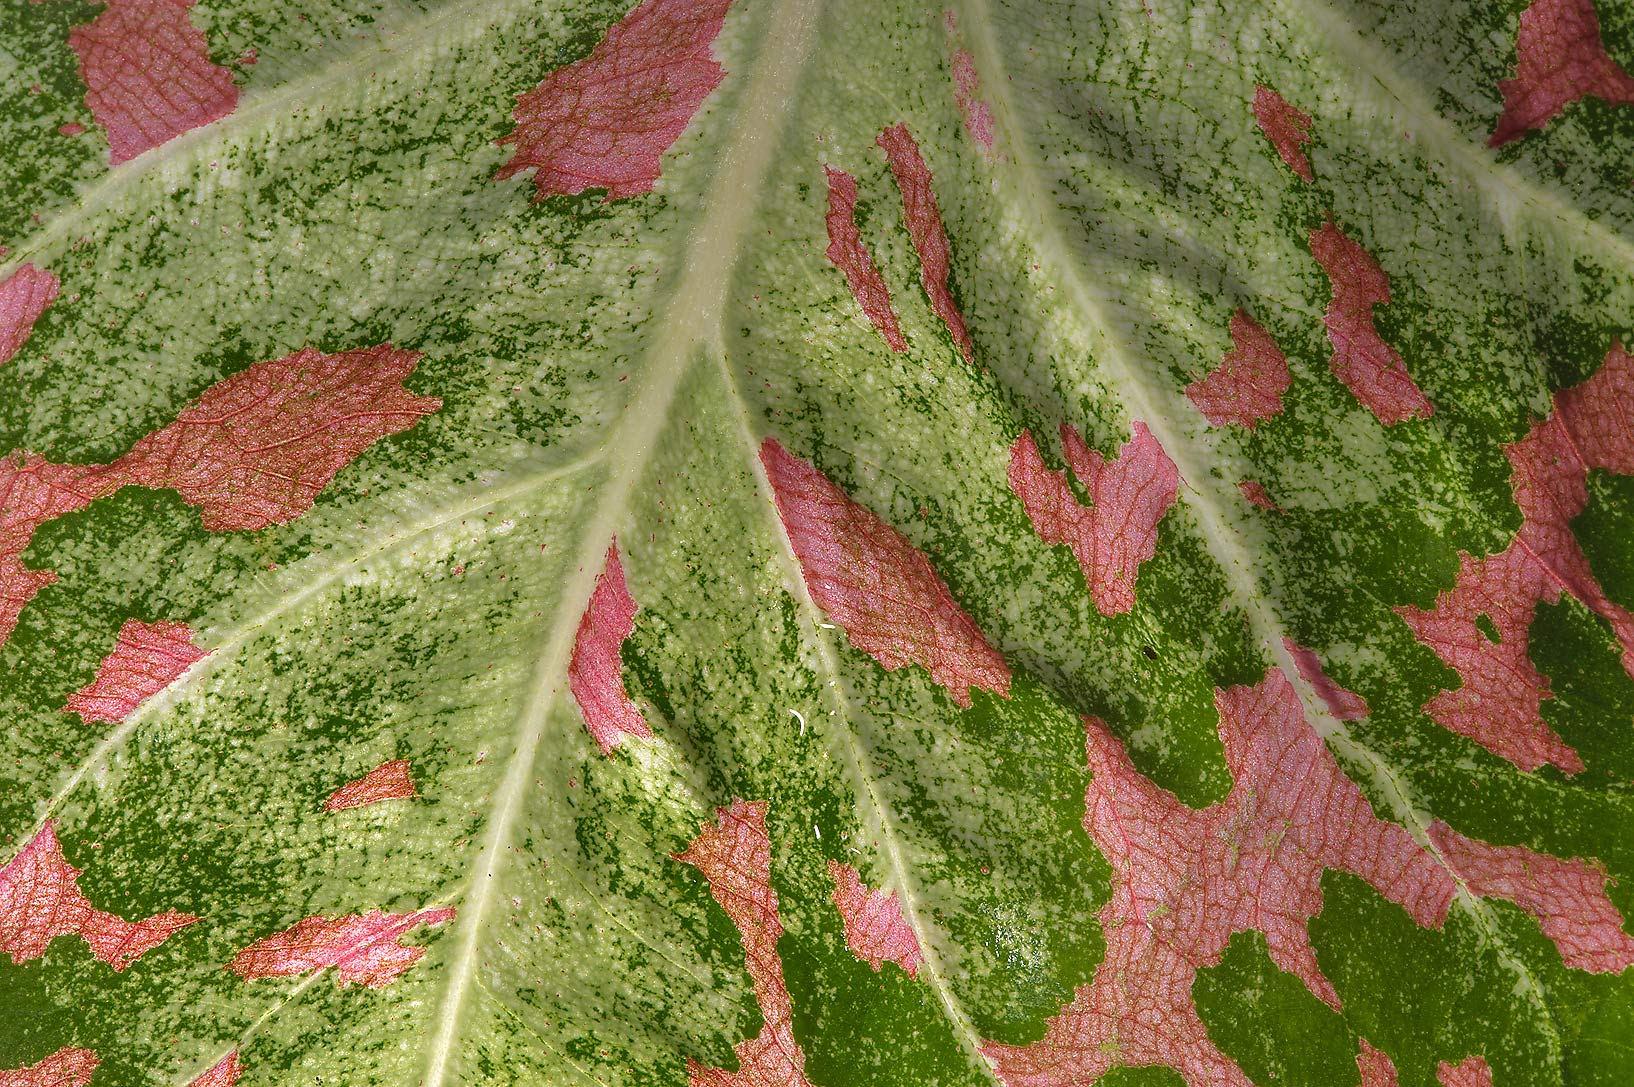 Back lit leaf of fancy-leaved caladium (Caladium...Gardens. Humble (Houston area), Texas